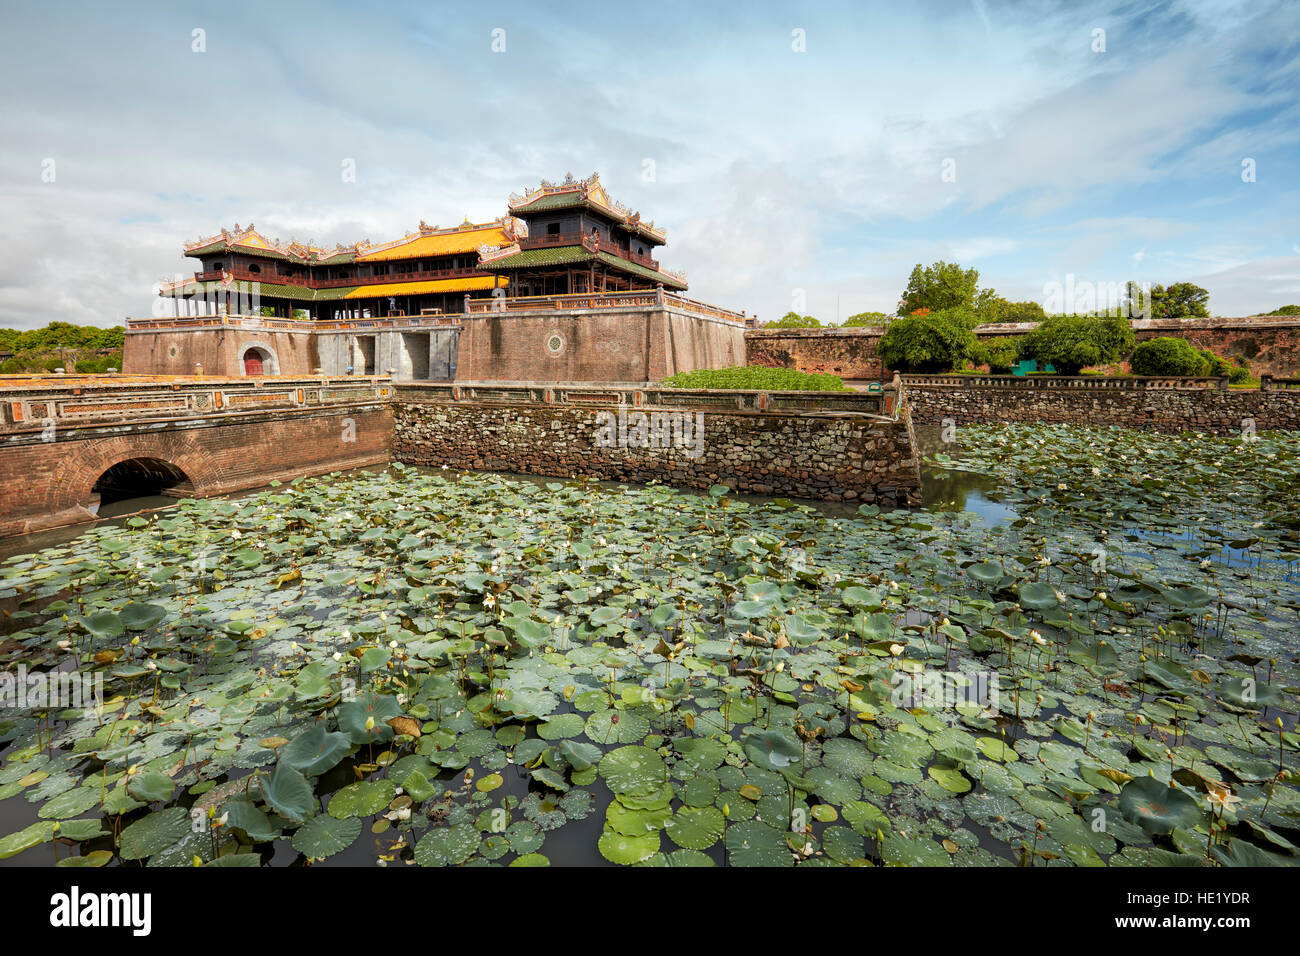 Moat with lotuses at the Noon Gate (Ngo Mon). Imperial City, Hue, Vietnam. - Stock Image